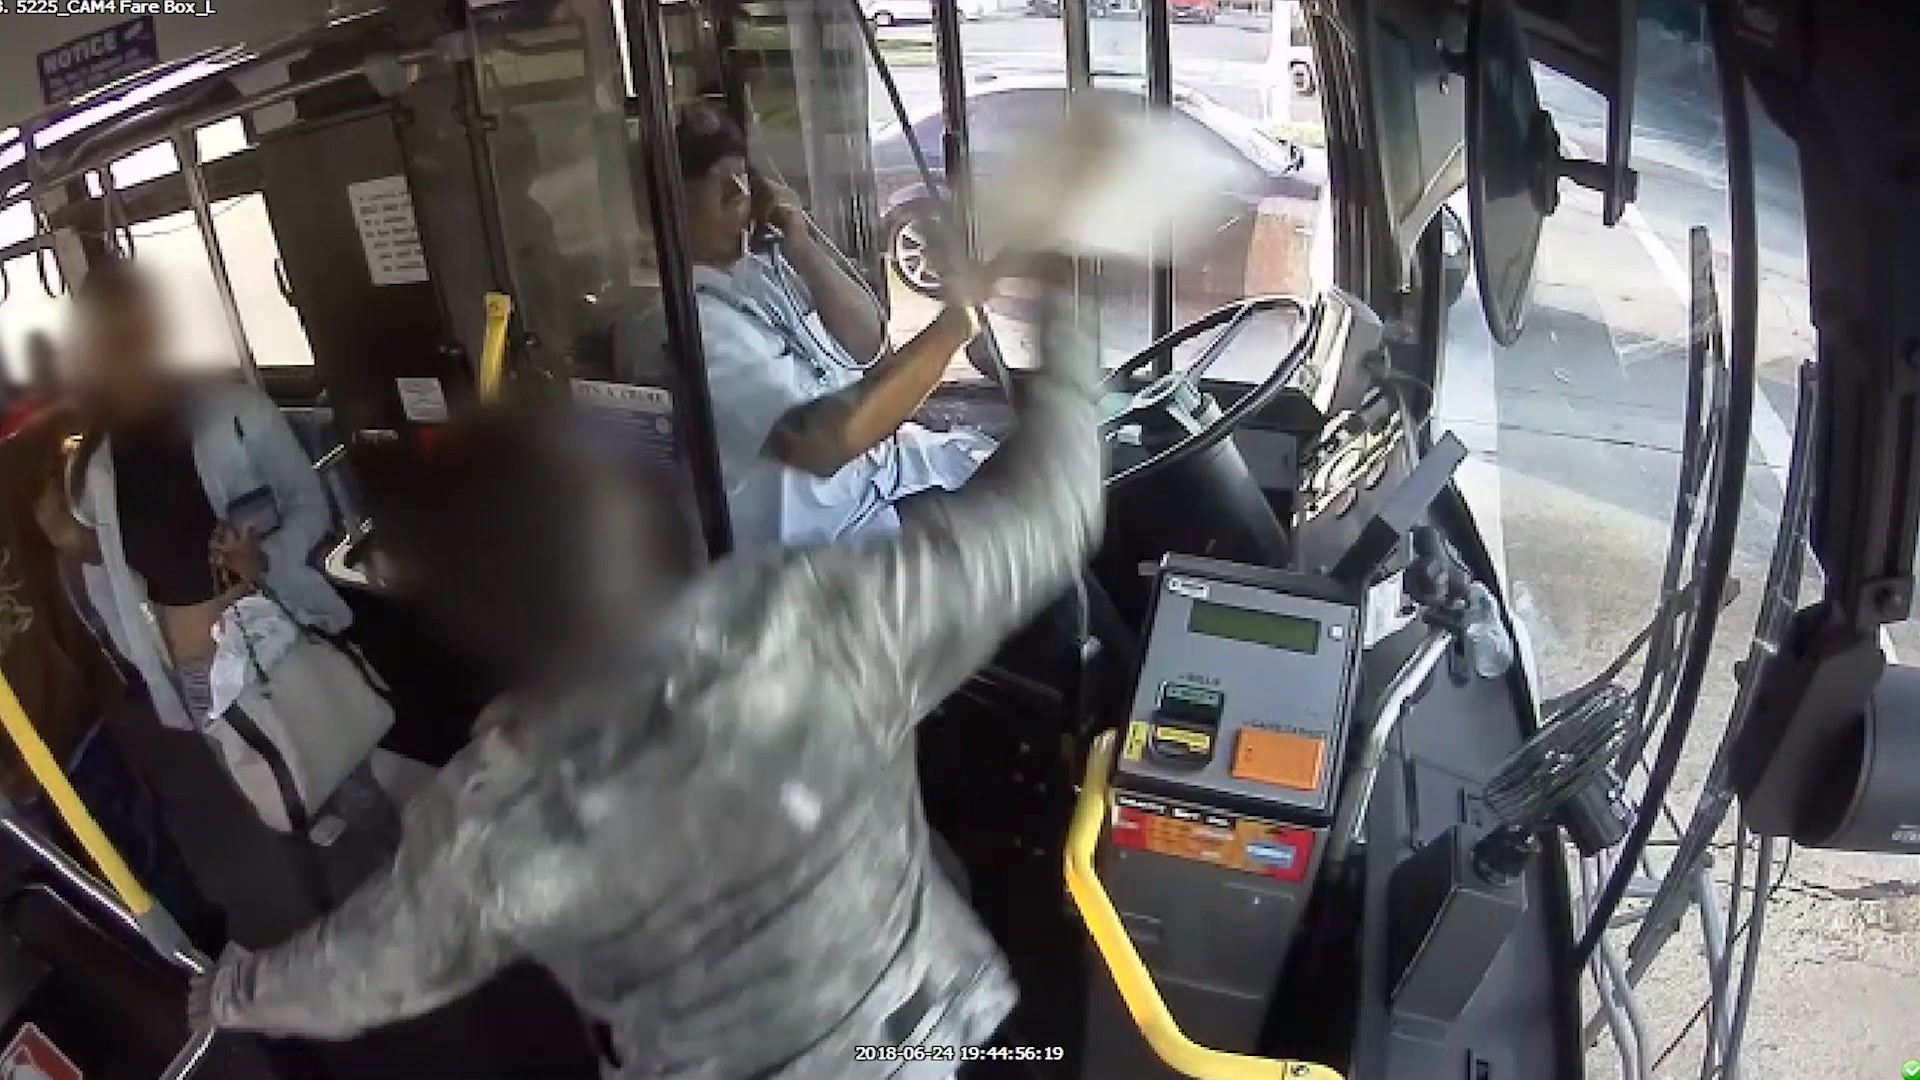 Surveillance video shows attacks on MCTS drivers, union wants action